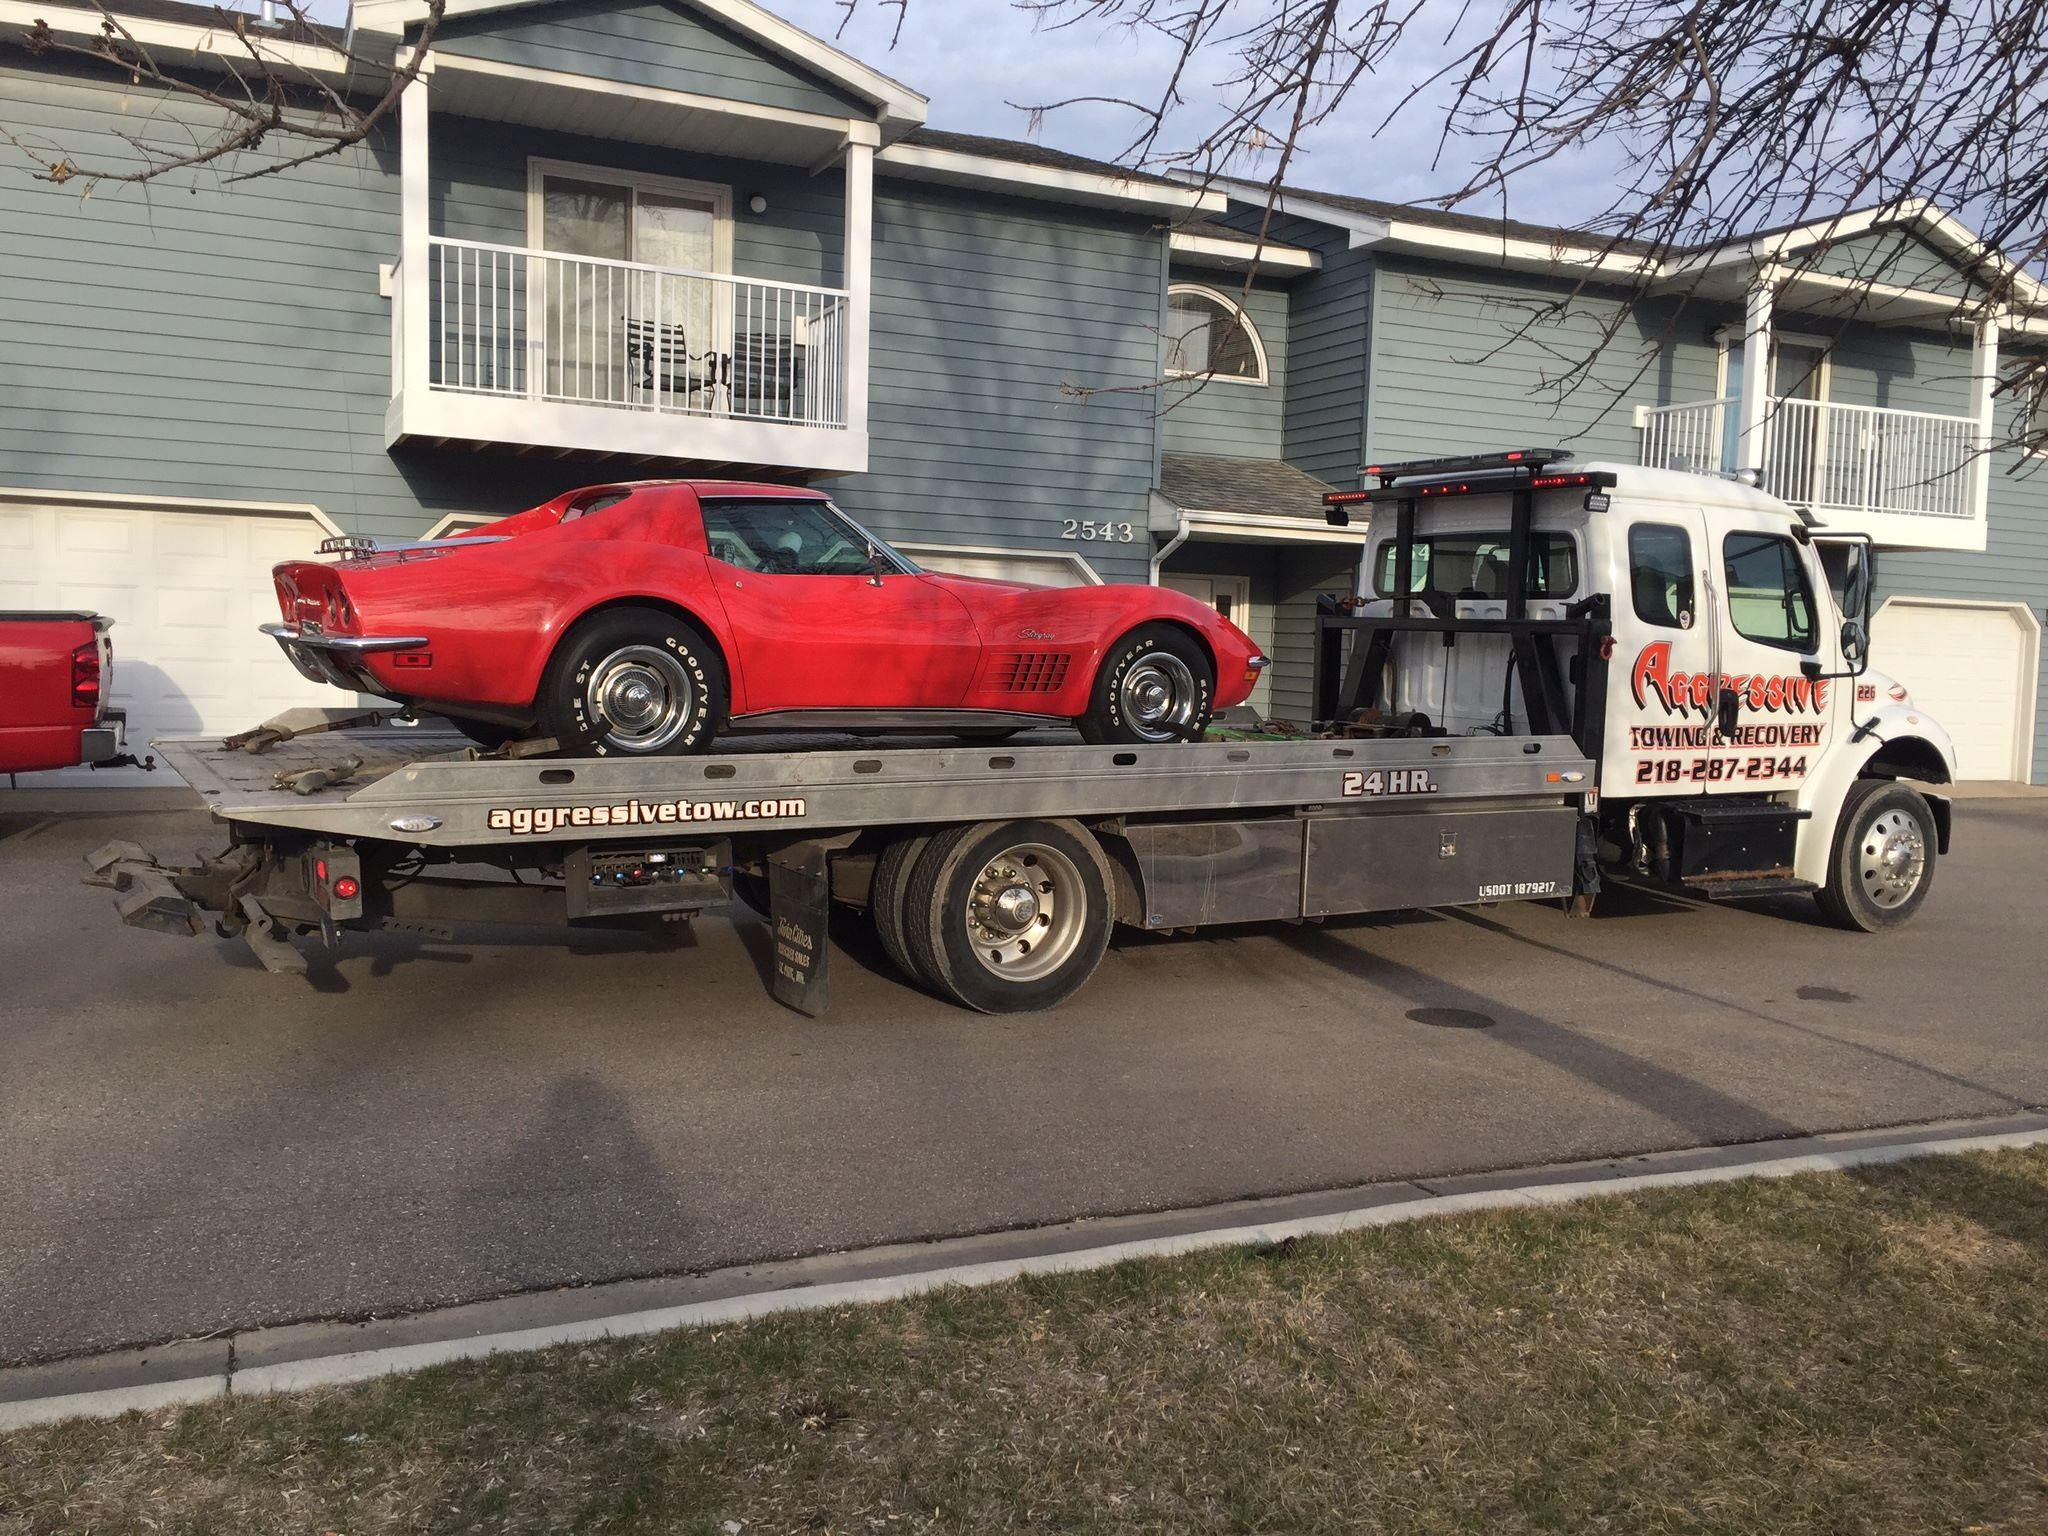 Aggressive Towing & Recovery